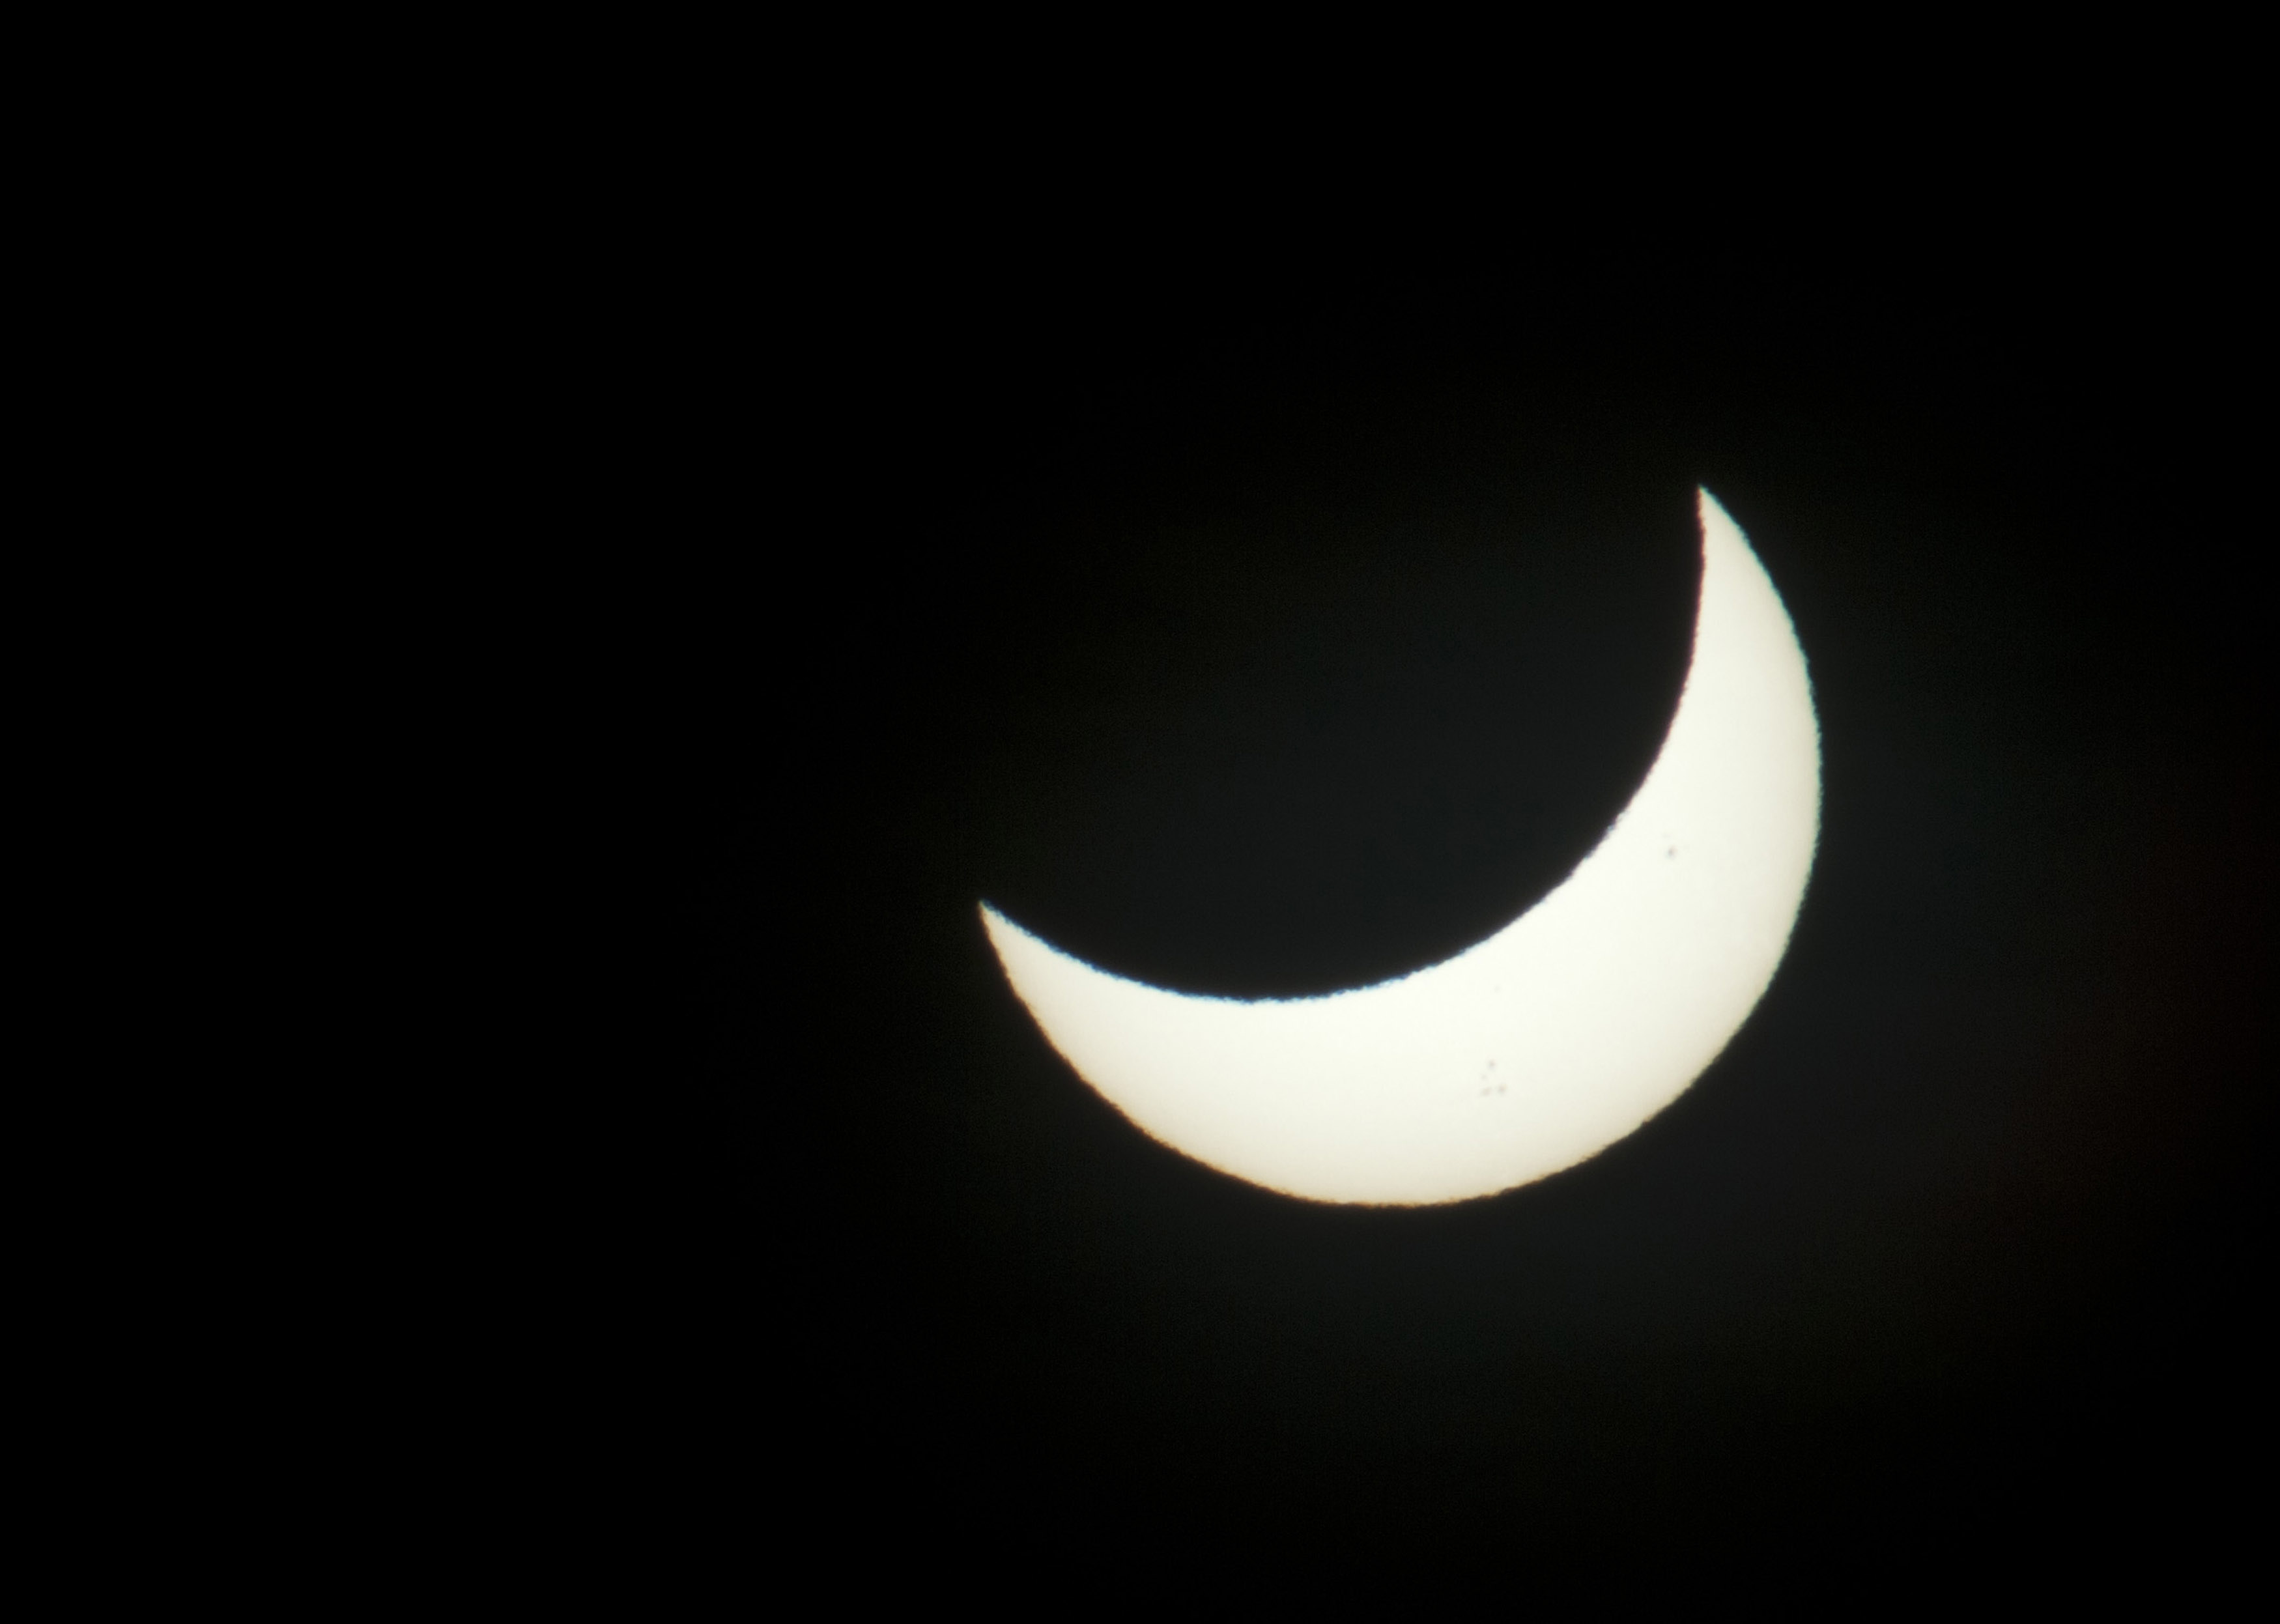 The sun as pictured through a dark filter during a solar eclipse, partially blocked by the moon